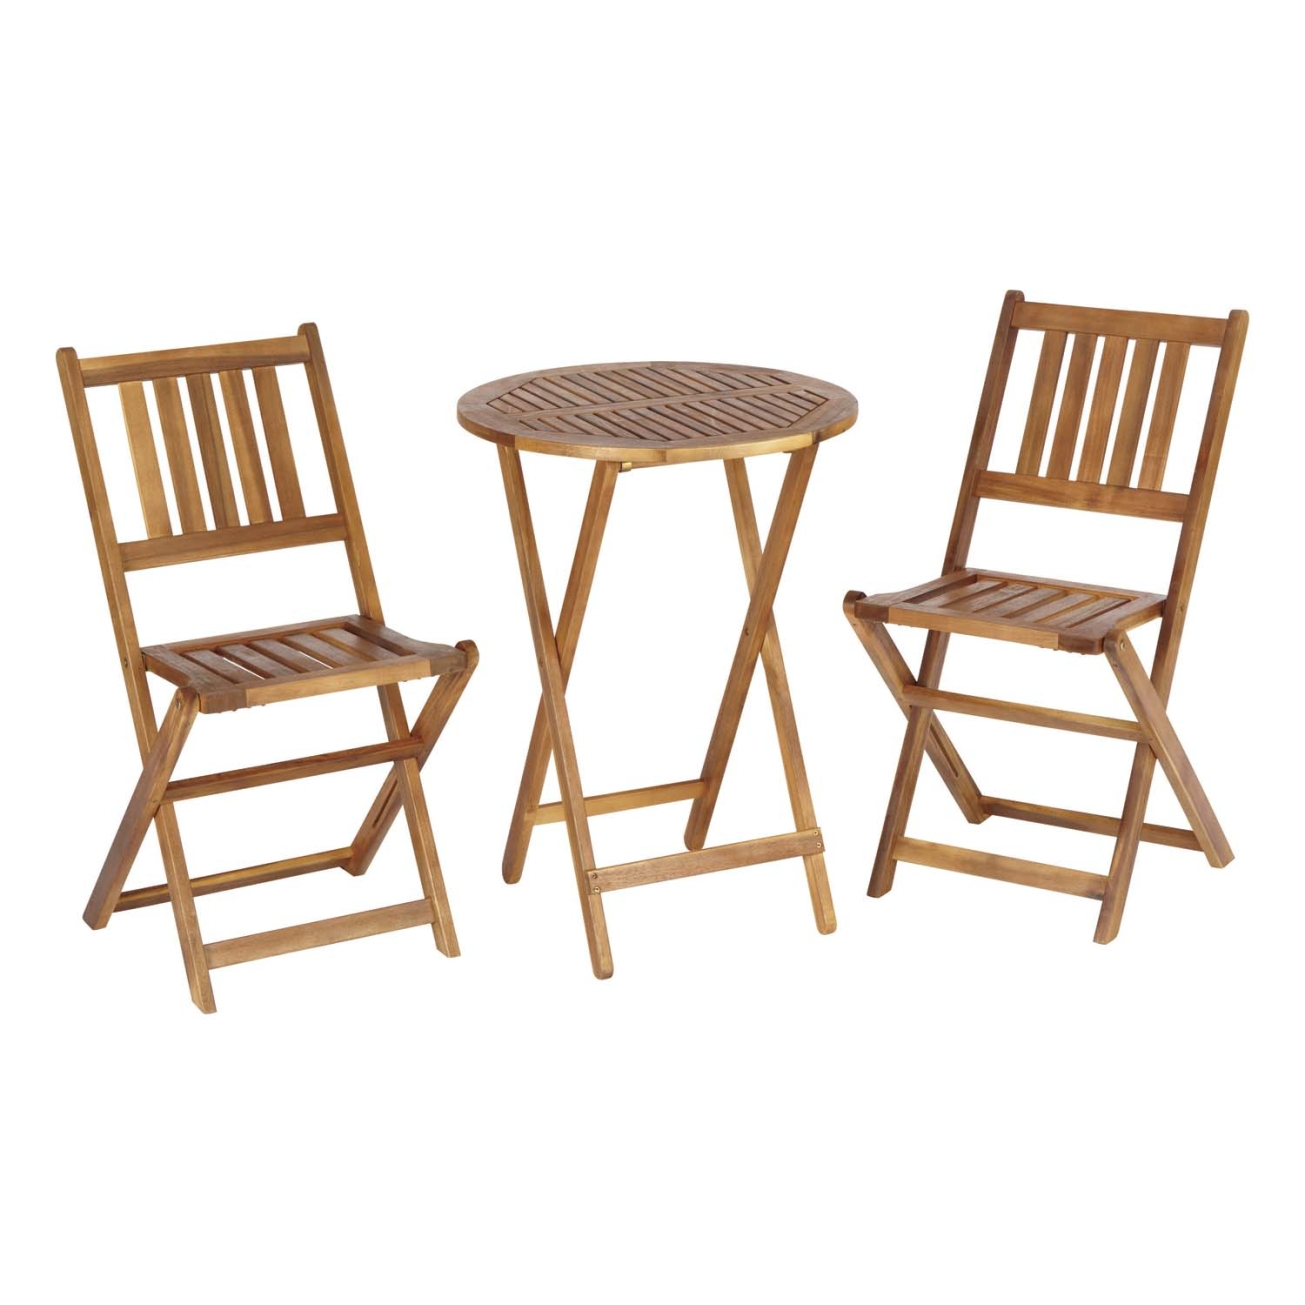 wood folding table and chairs white wooden get a nice spot in your garden or patio by decorating an